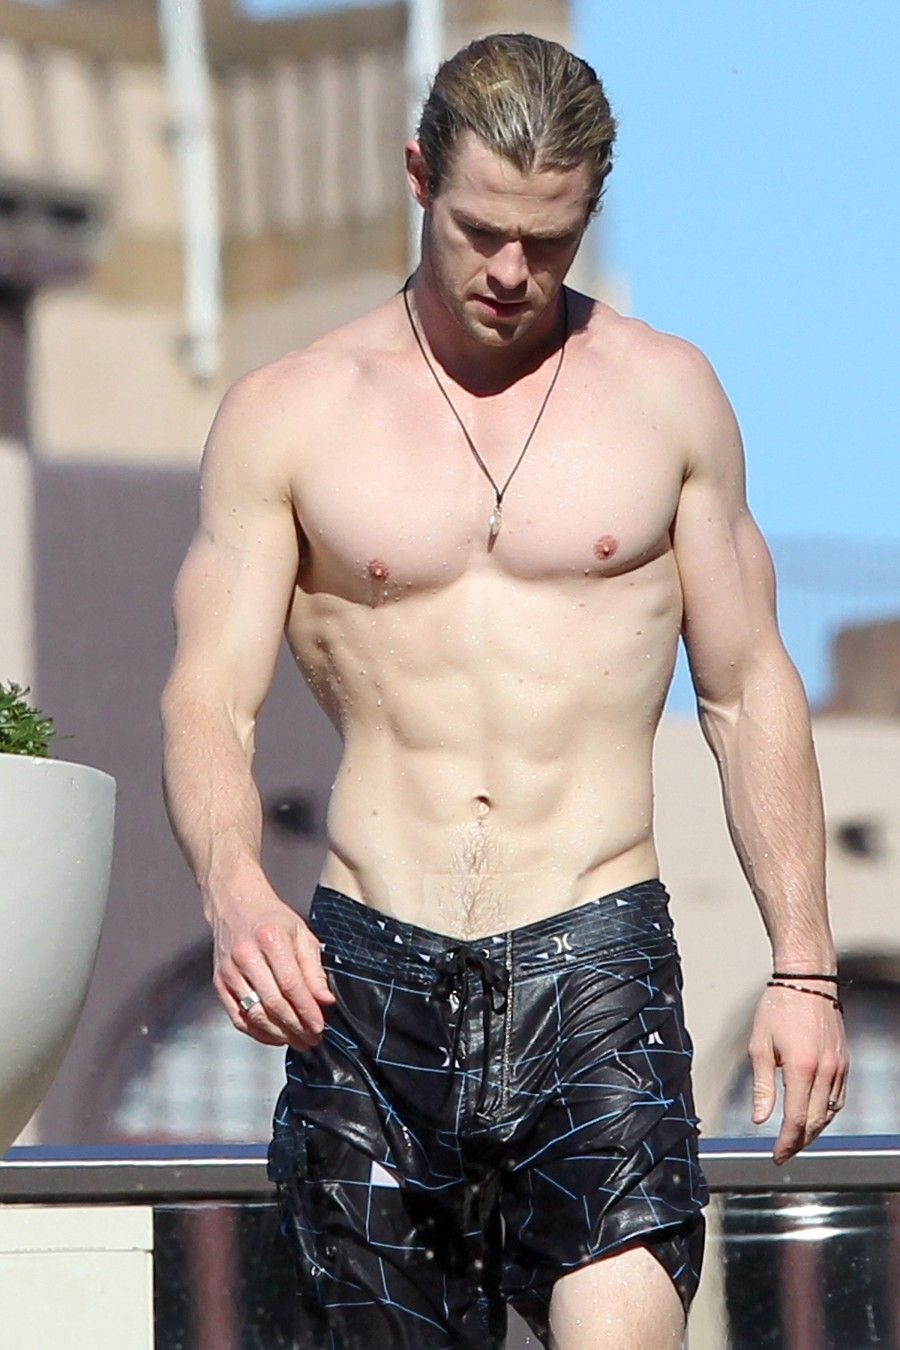 Chris Hemsworth shows off his ripped body as he chills by his hotel pool. Pictured: Chris Hemsworth Ref: SPL407263  180612   Picture by: Blue Wasp/Grey Wasp/Splash News Splash News and Pictures Los Angeles:310-821-2666 New York:212-619-2666 London:870-934-2666 photodesk@splashnews.com